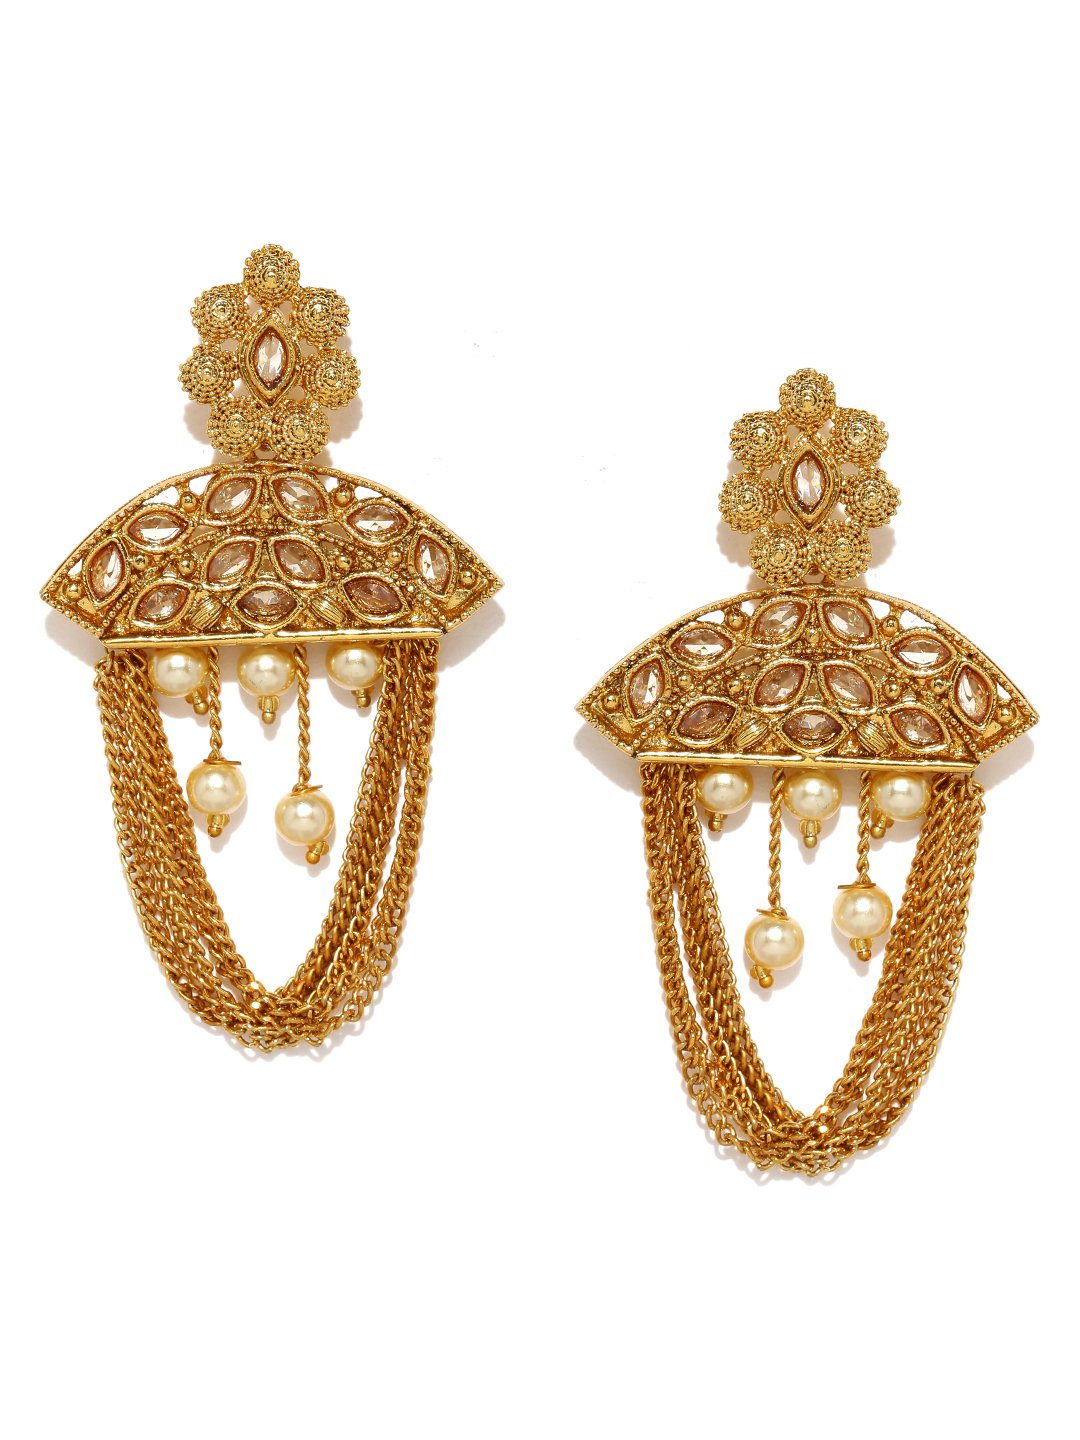 Rubans Gold Plated Traditional Indian Jewelry Bollywood Ethnic Wedding Bridal Kundan and Pearls Chandbali Earrings for Women